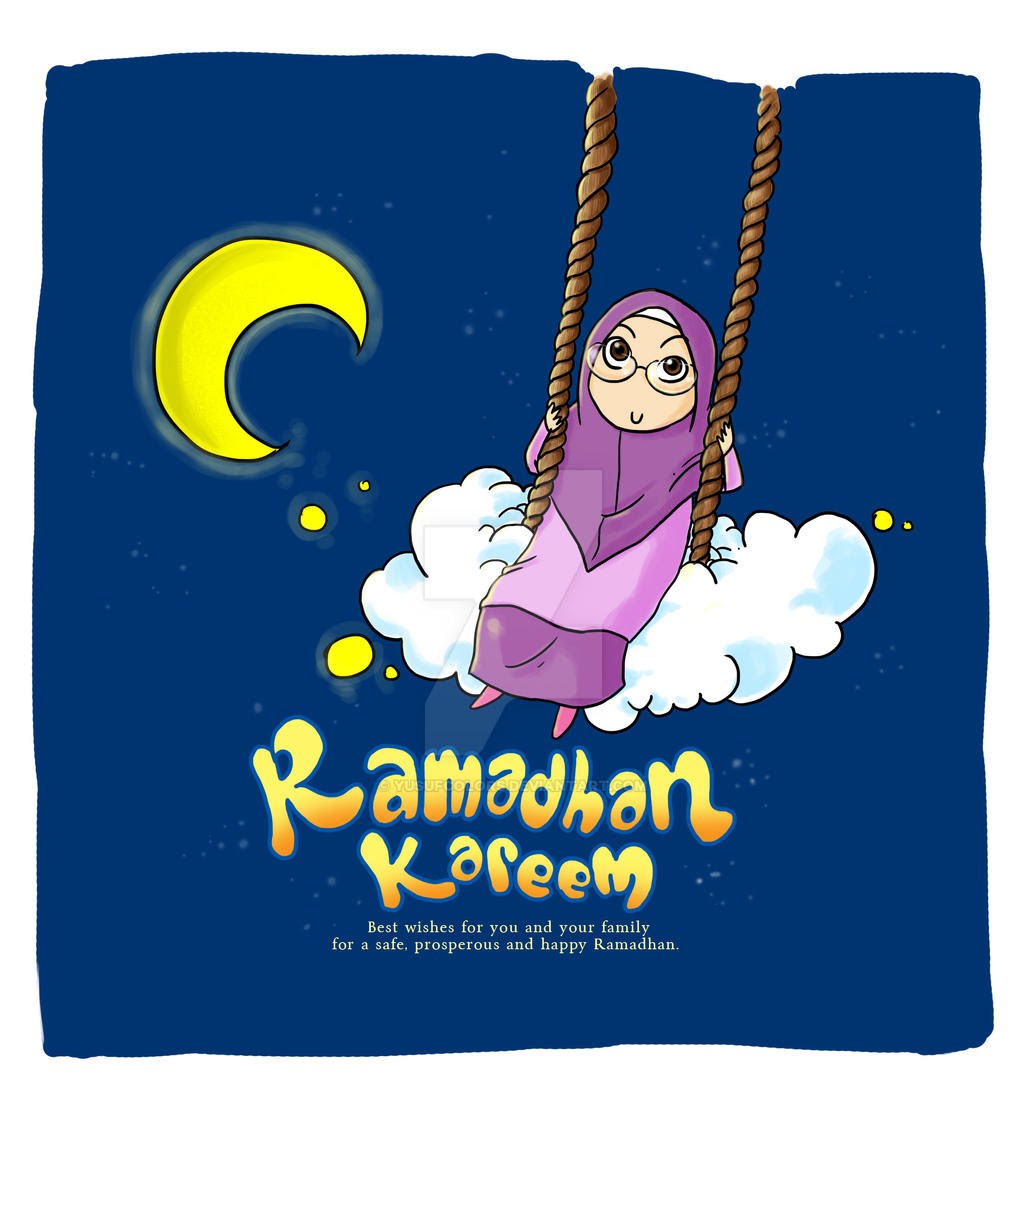 Ramadhan Kareem by yusufcolors on DeviantArt